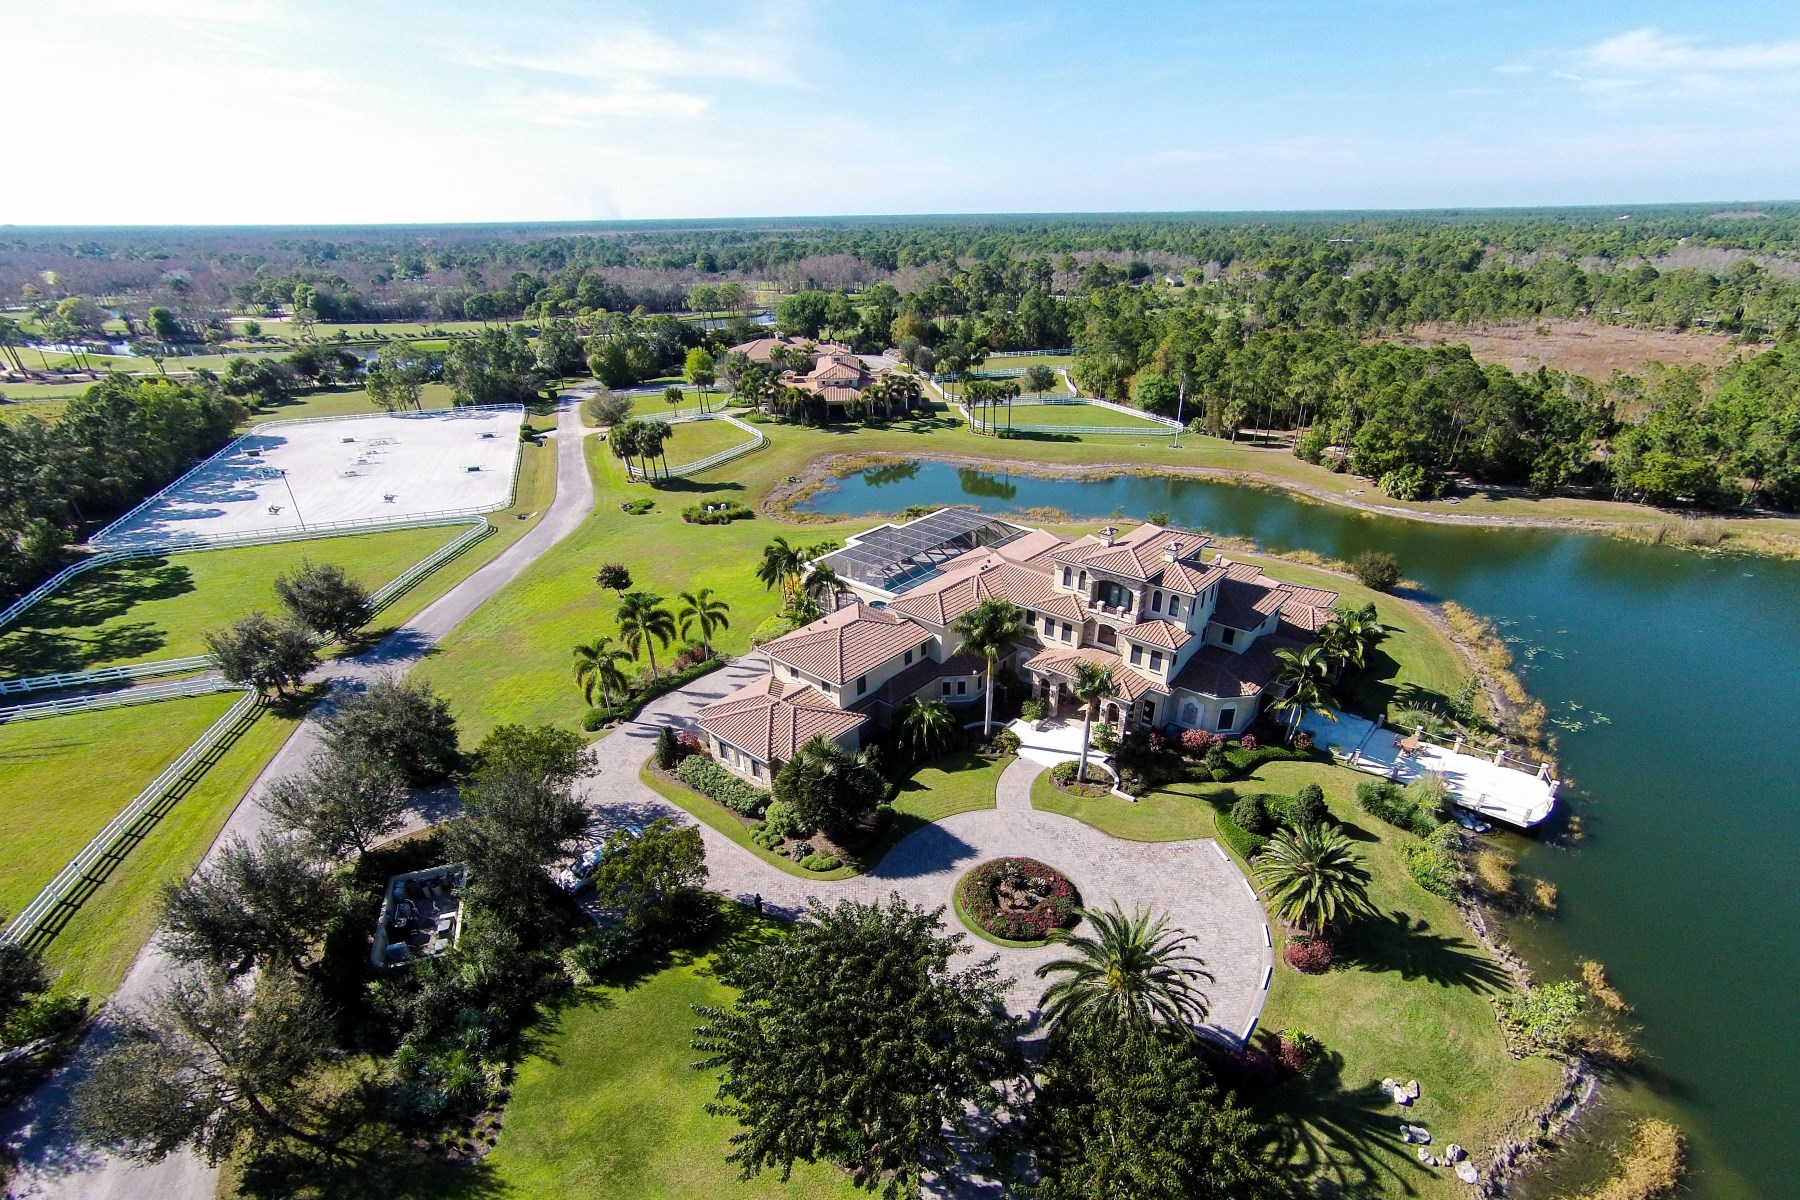 Ferme / Ranch / Plantation pour l Vente à Jupiter Equestrian Estate Jupiter, Florida, 33478 États-Unis